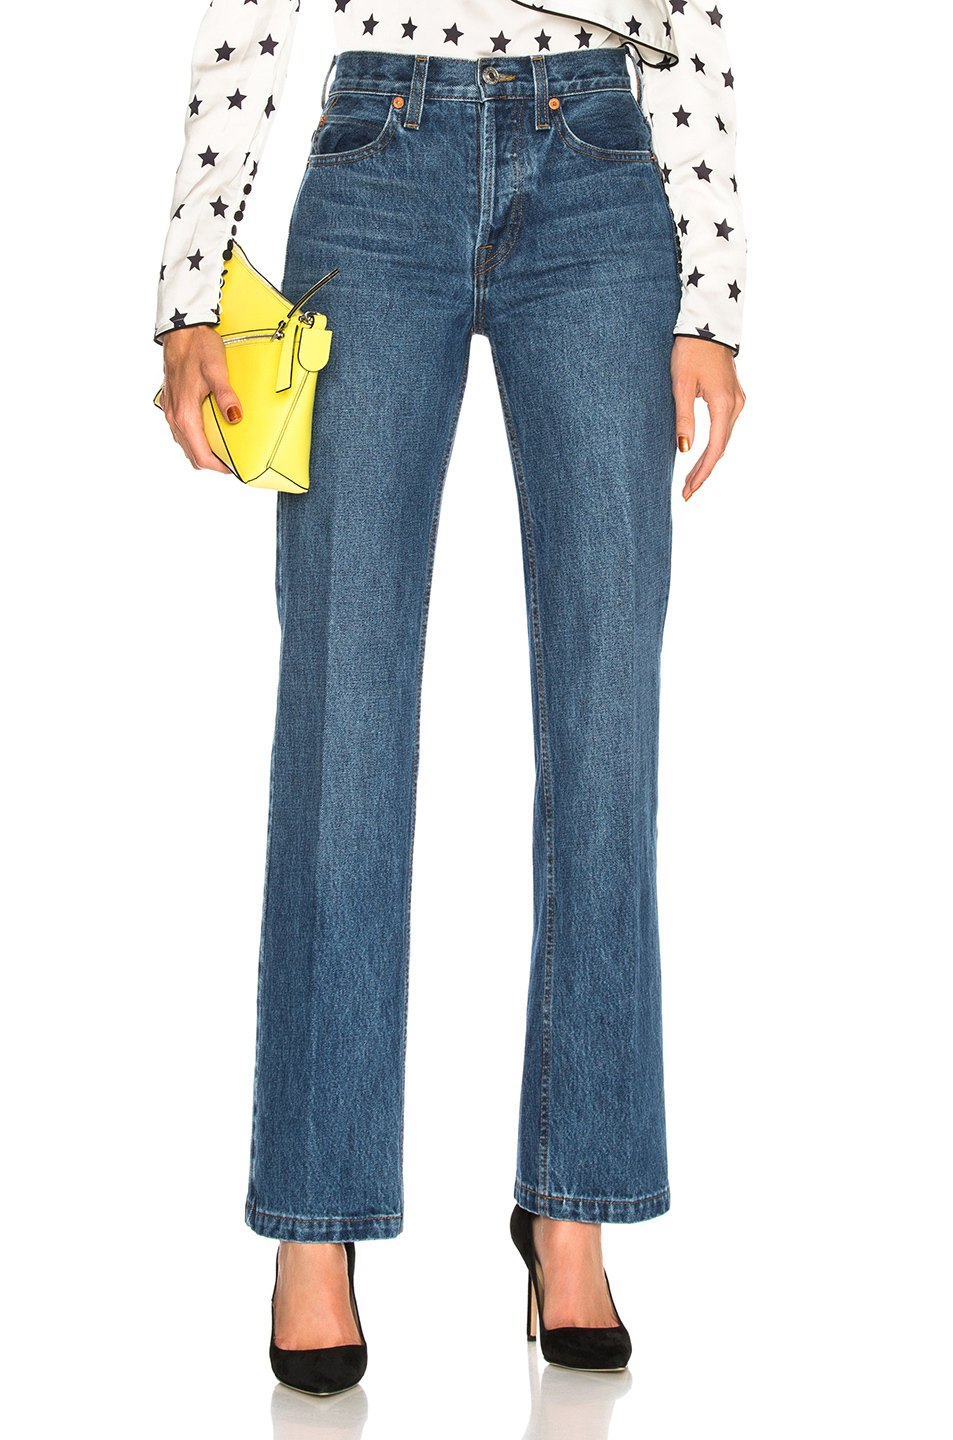 High Rise Medium Flare Jeans by Re/Done, available on fwrd.com Kaia Gerber Pants Exact Product